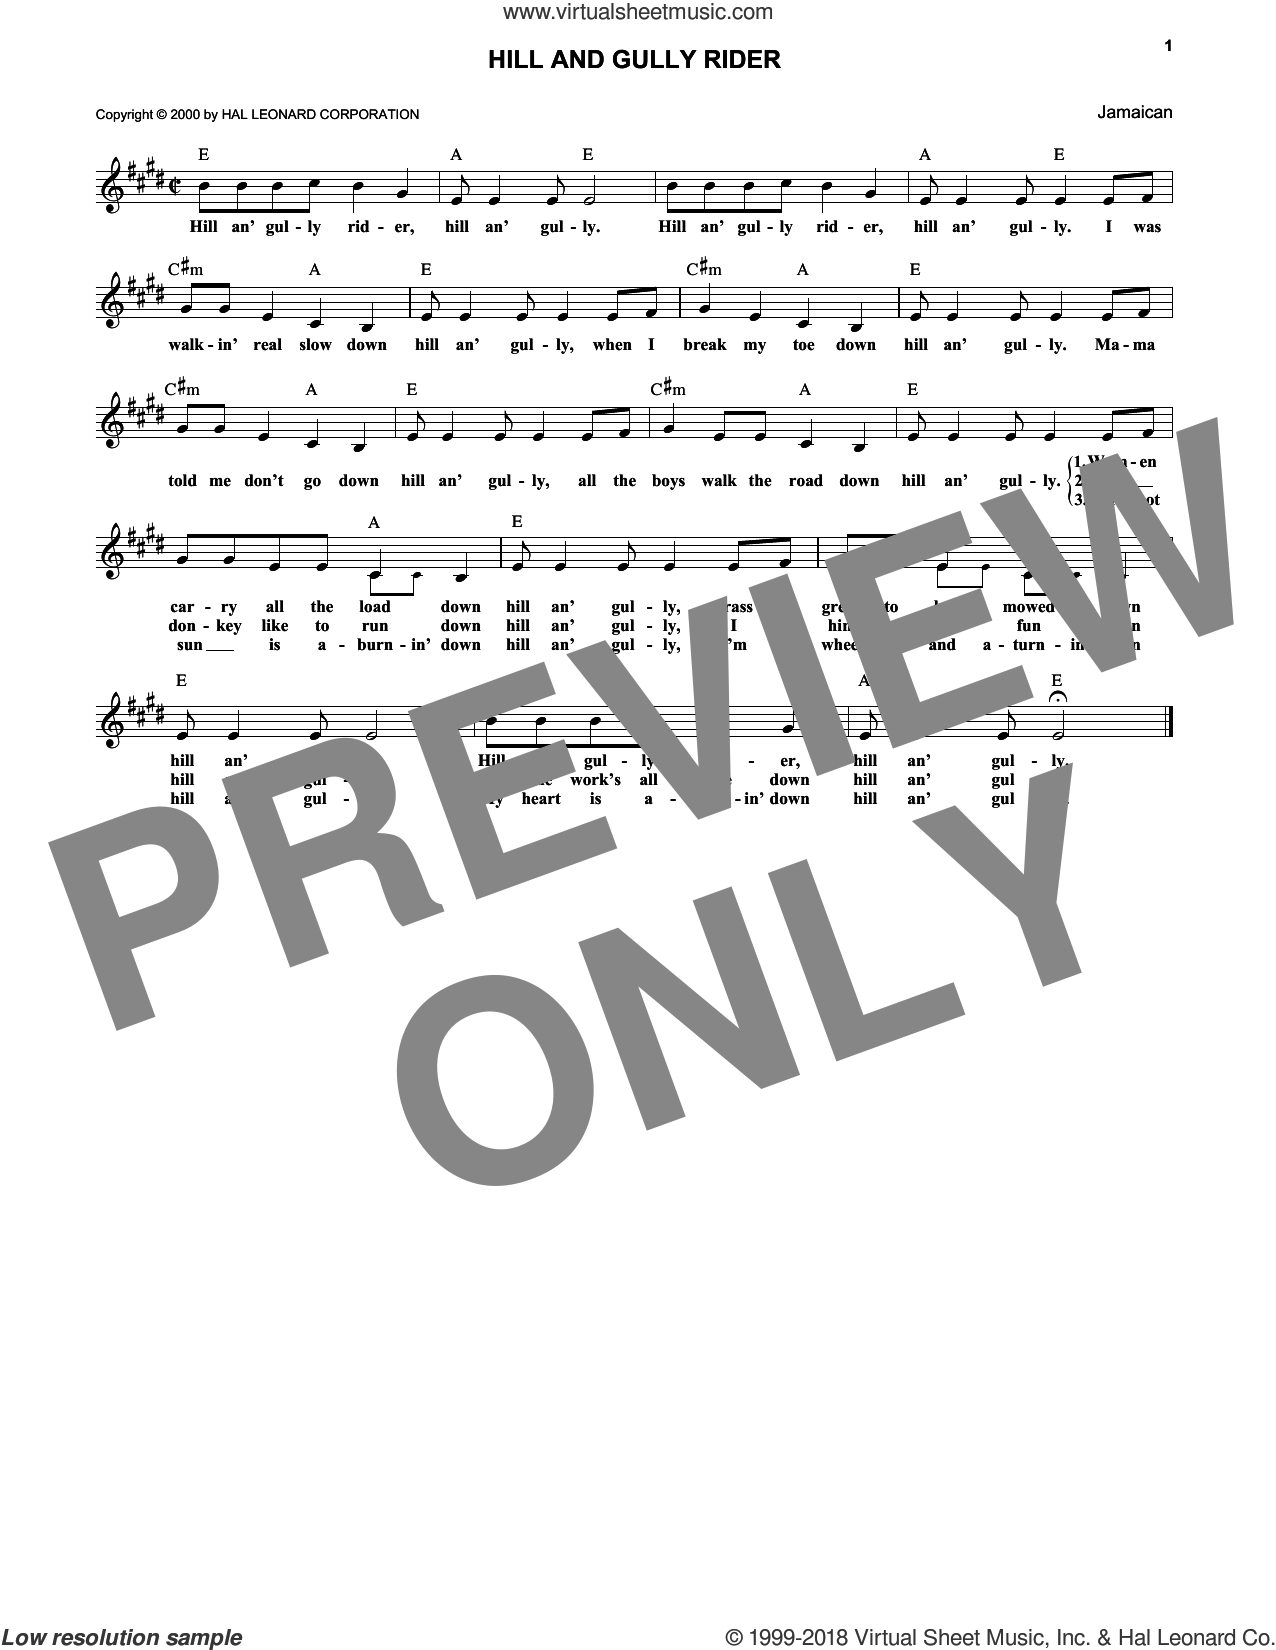 Hill And Gully Rider sheet music for voice and other instruments (fake book) by Caribbean. Score Image Preview.